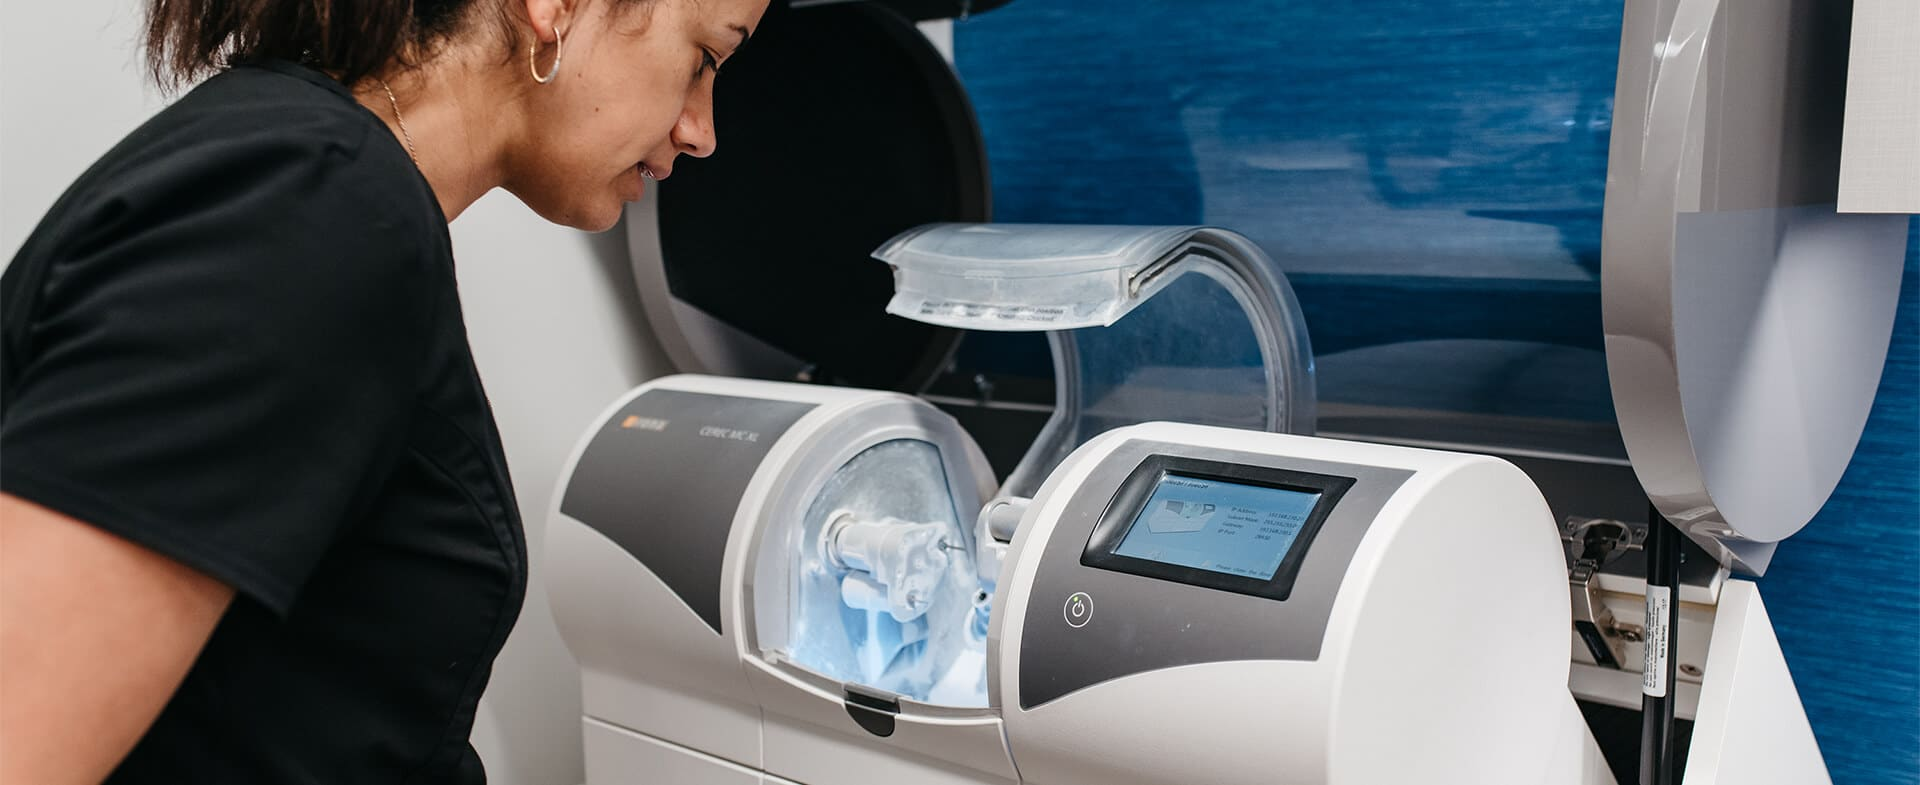 Dr. Provo inspects CEREC milling machine